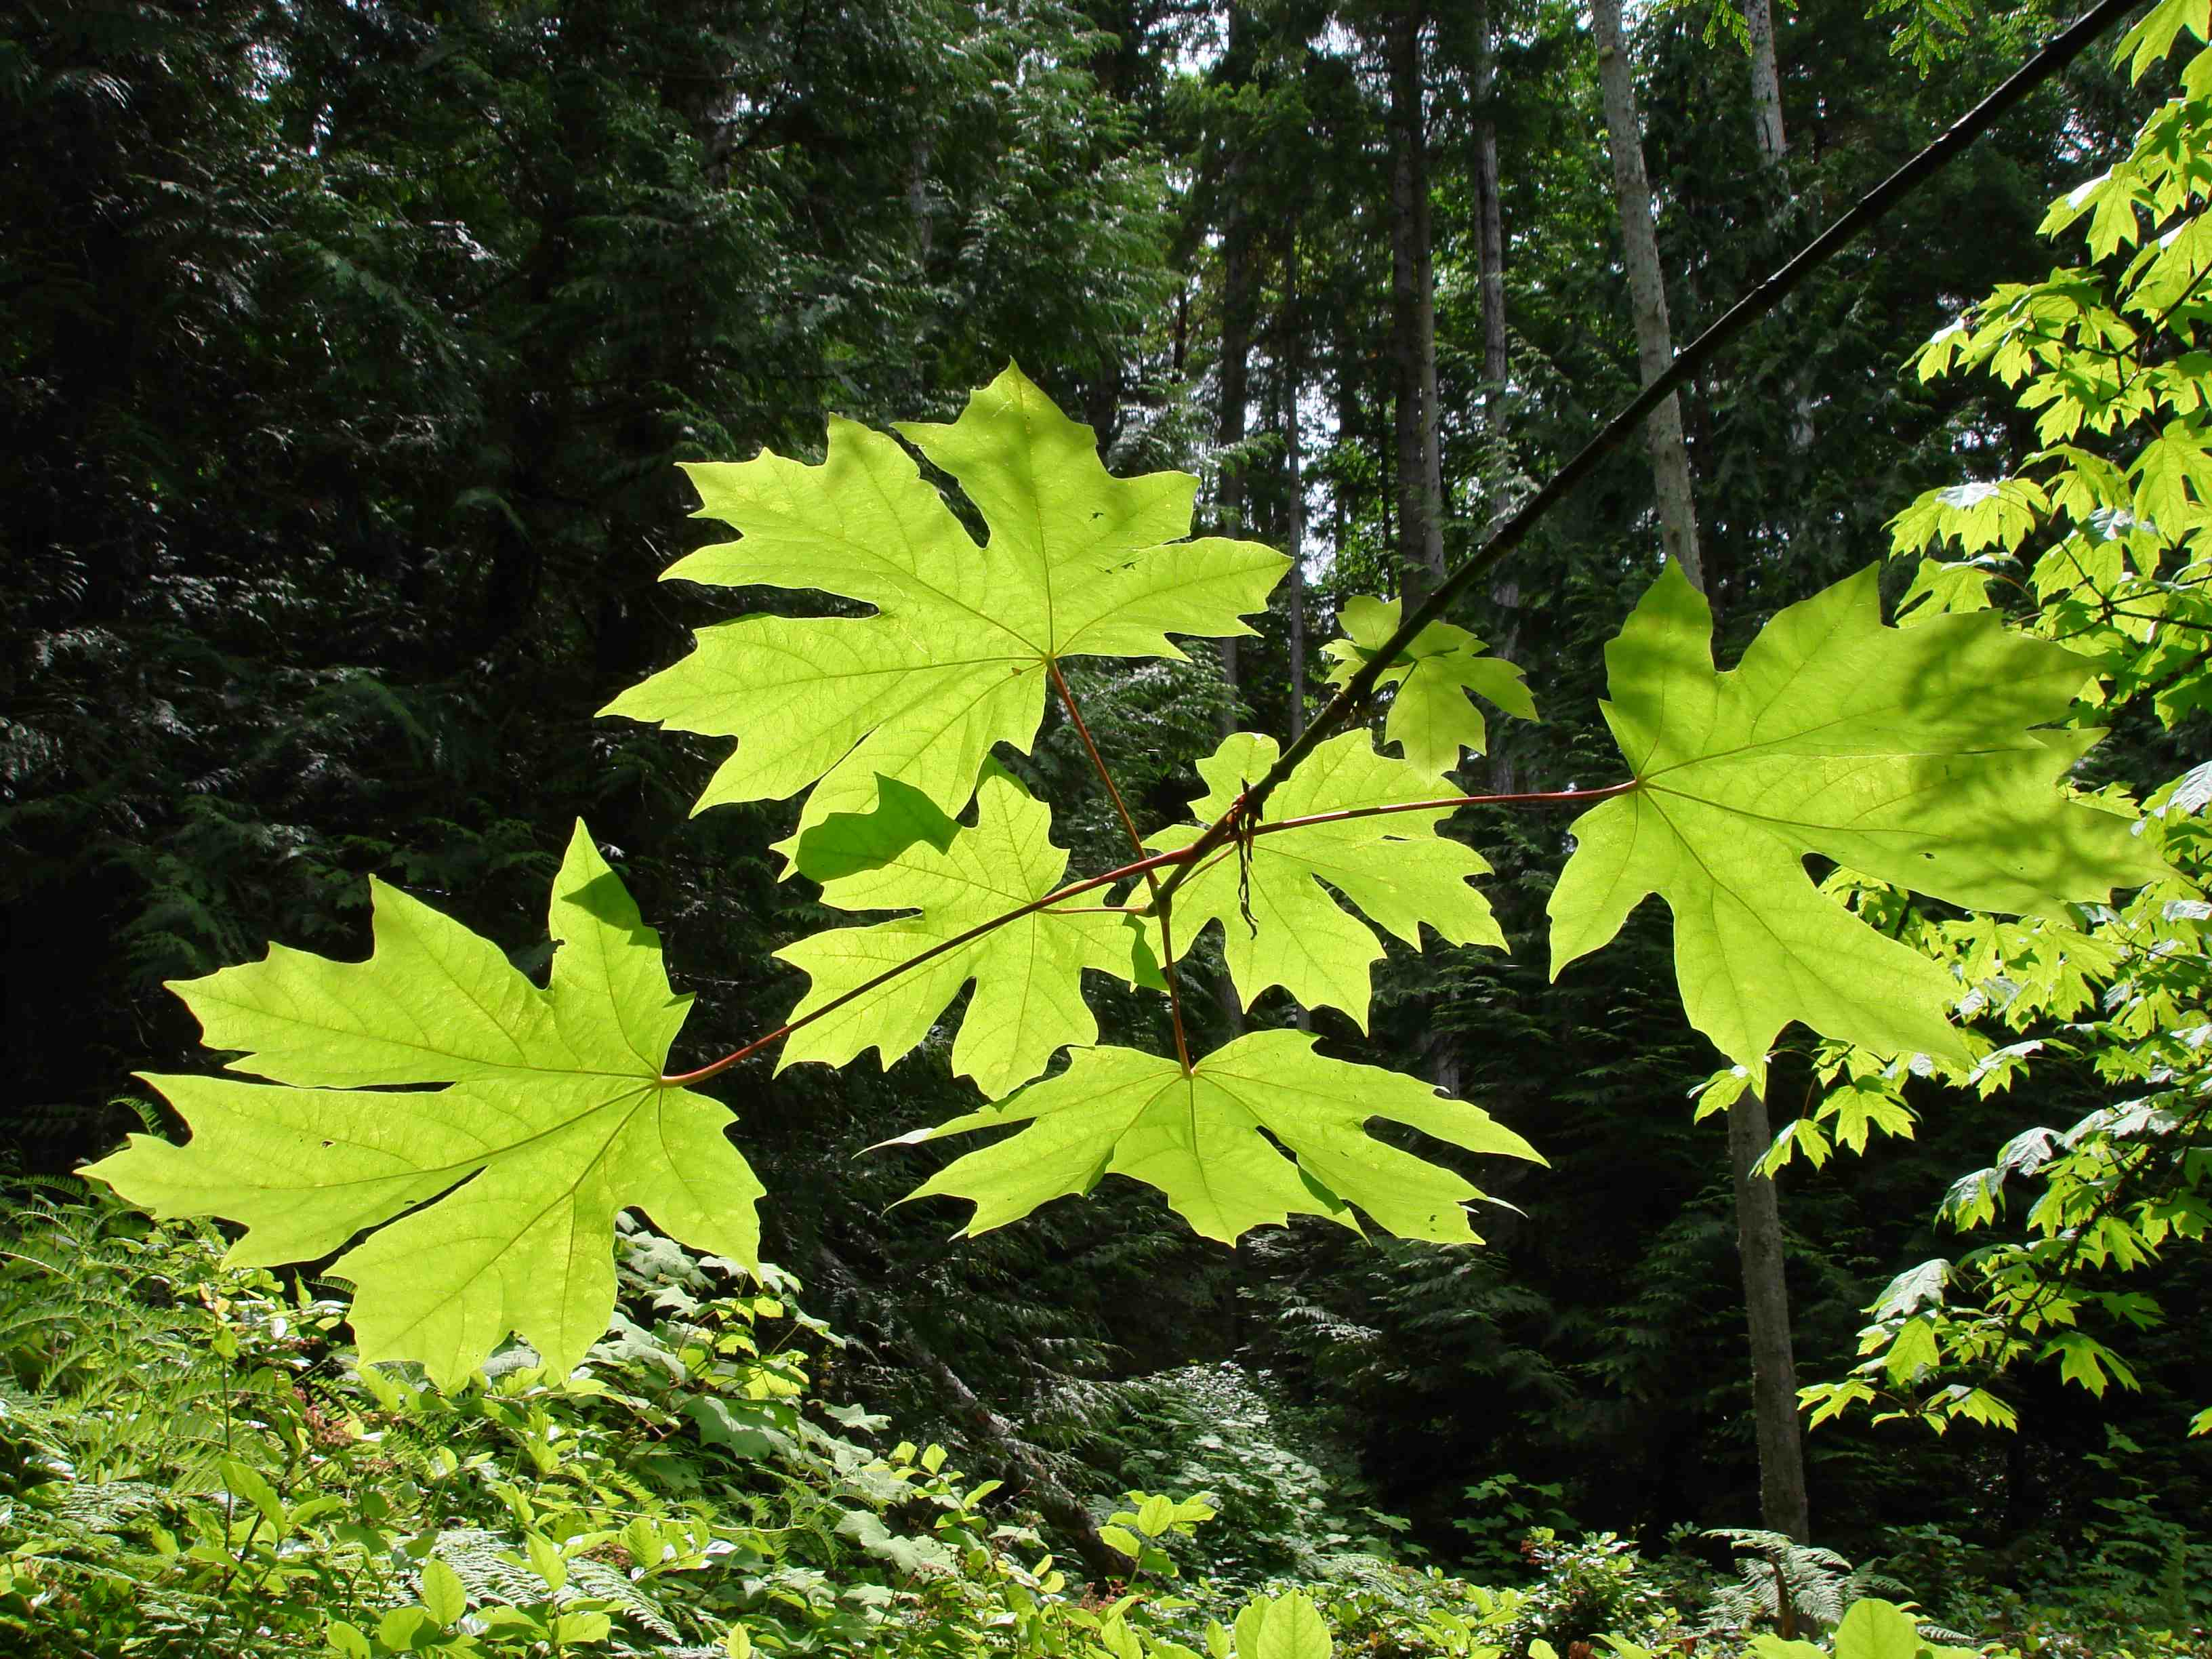 Bigleaf Maple Leaves